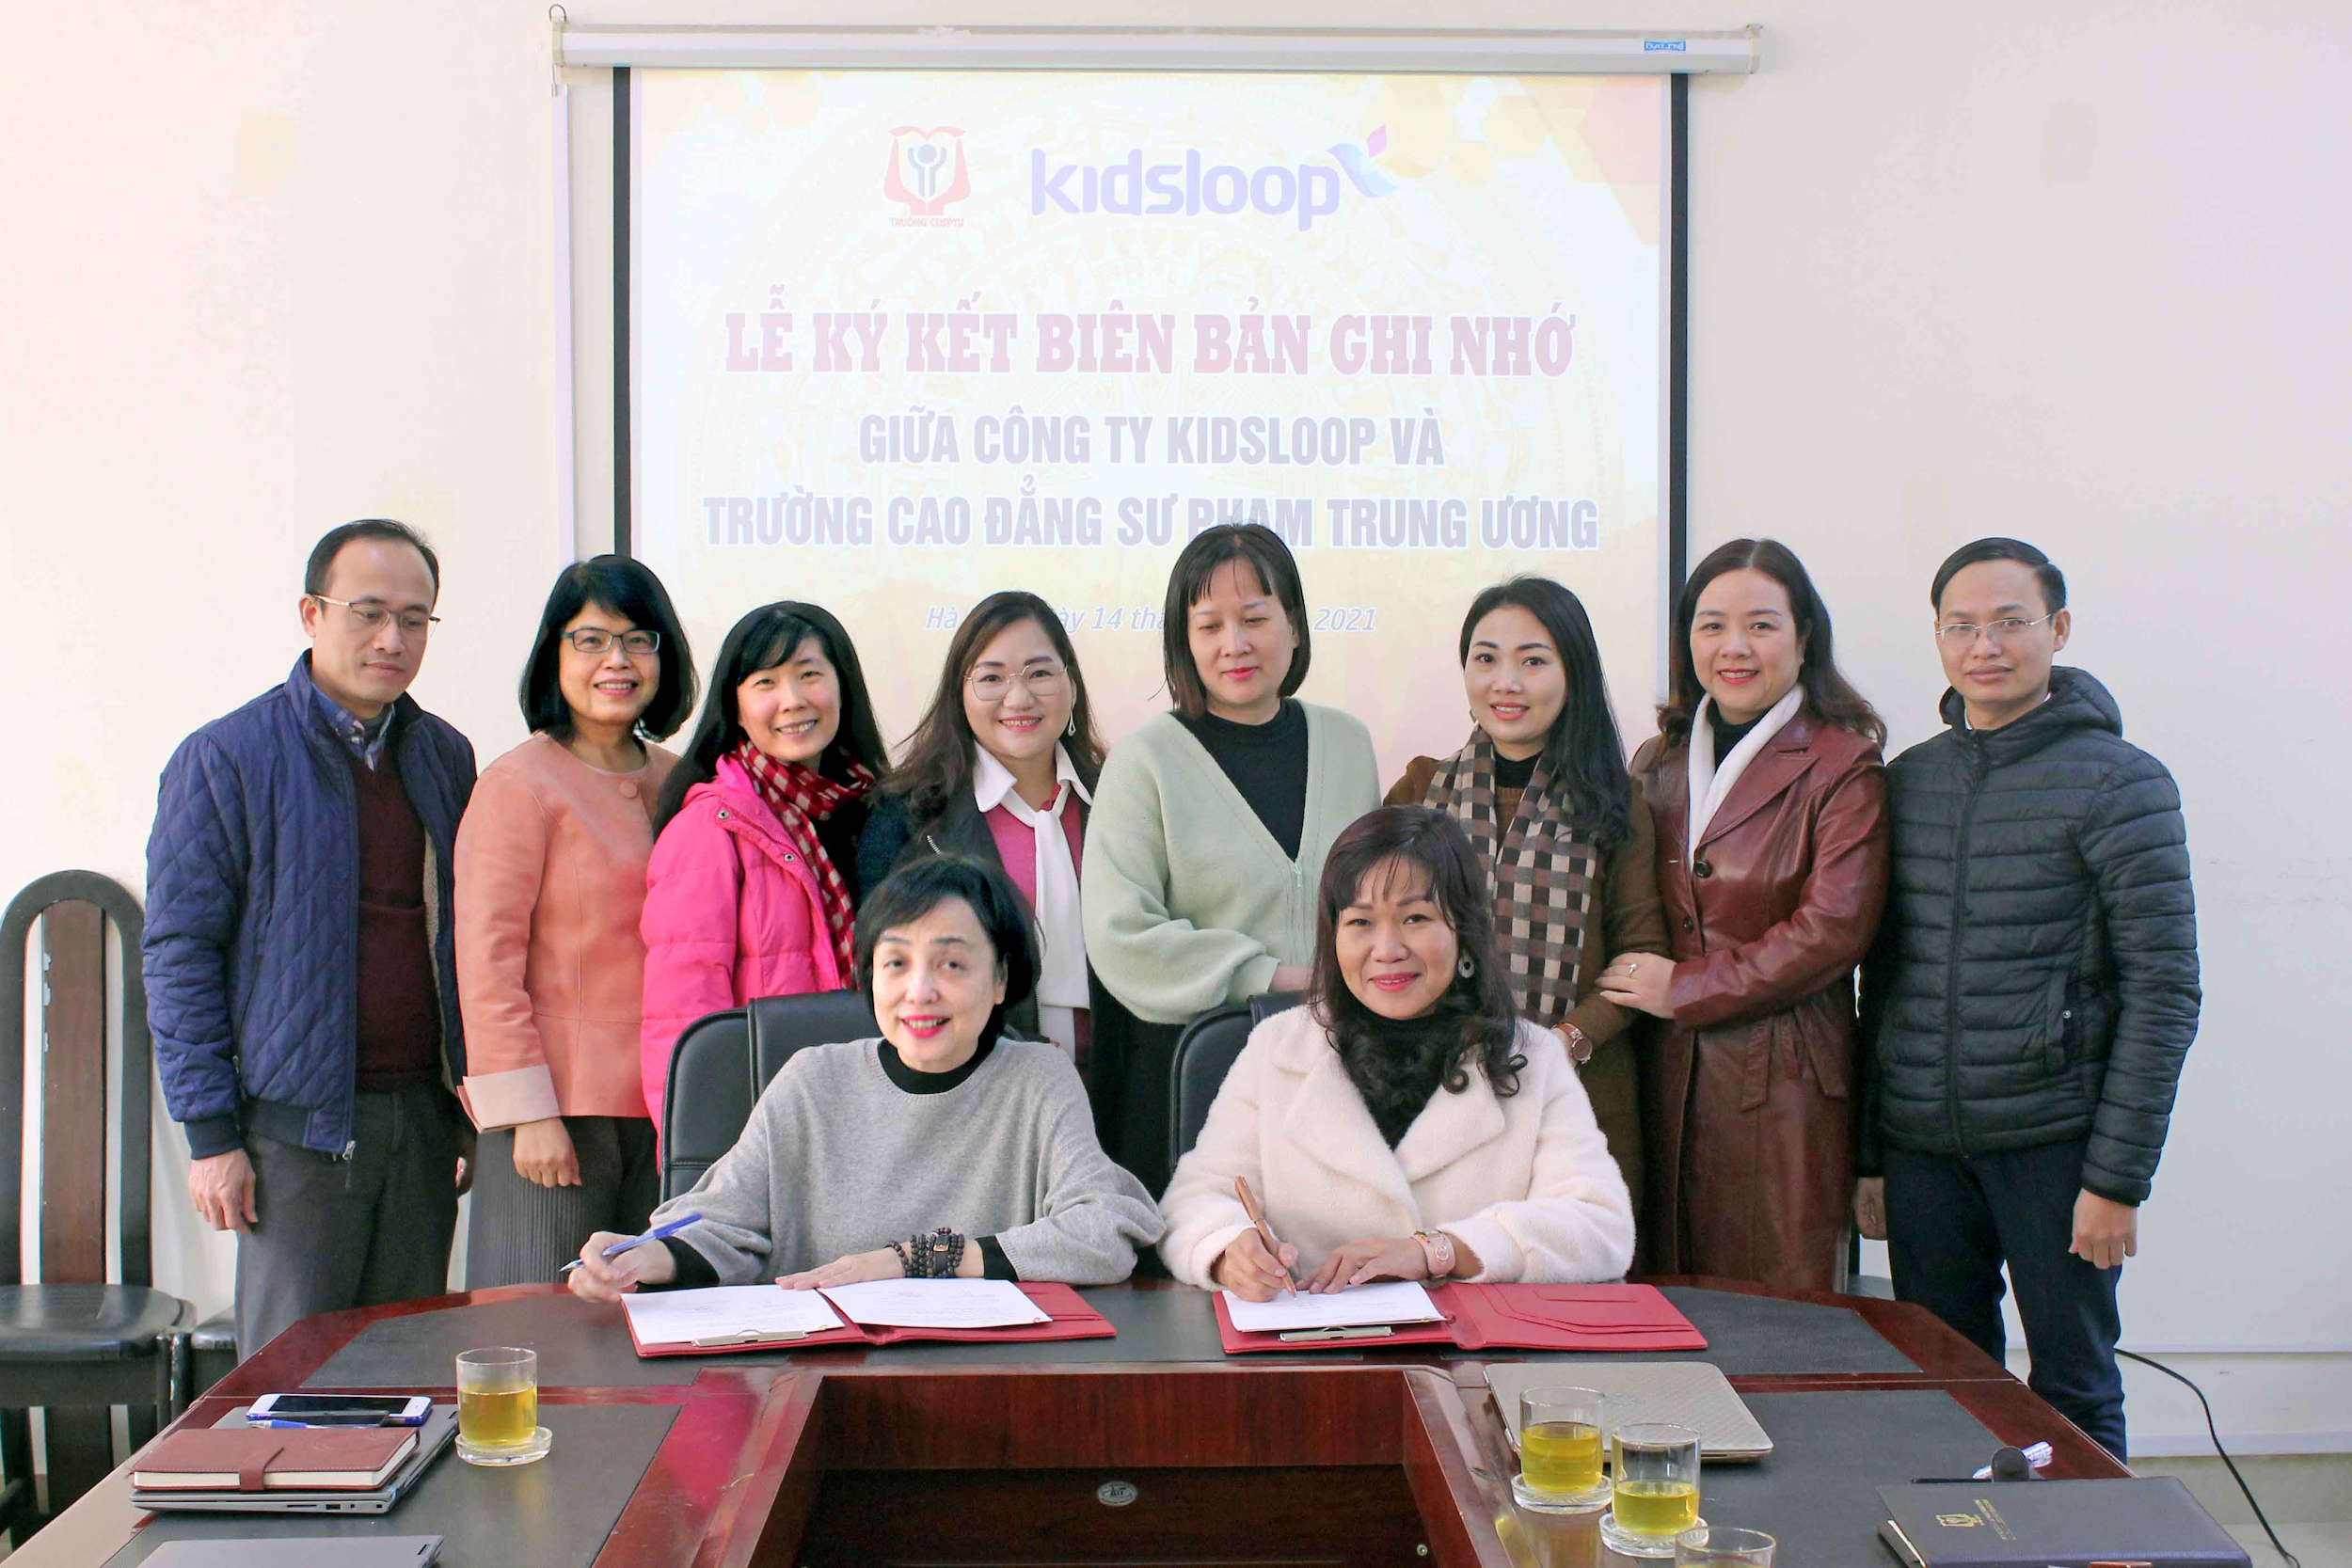 KidsLoop, National College for Education in strategic partnership to promote digital transformation in early education